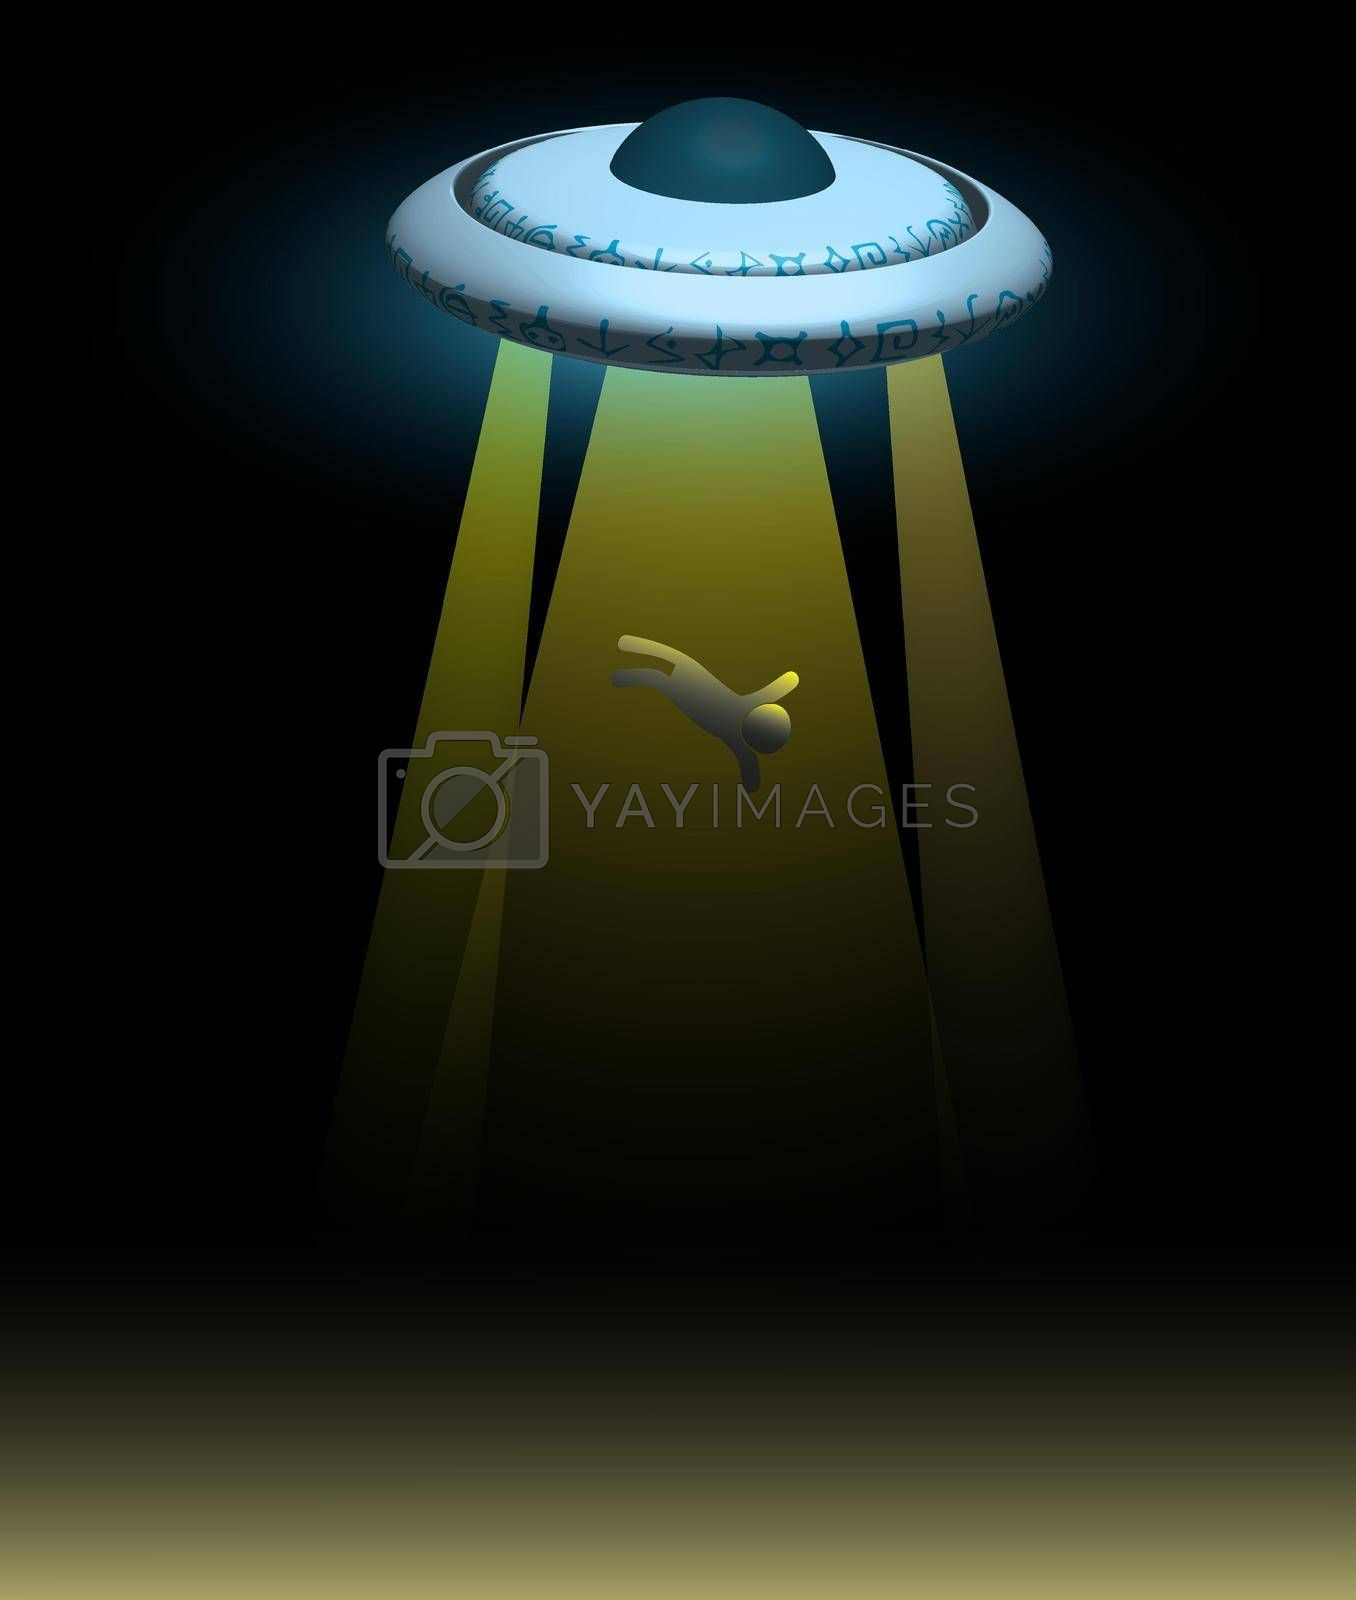 Royalty free image of alien spaceship. A flying saucer abducts a person at night. Illustration, vector by RNko